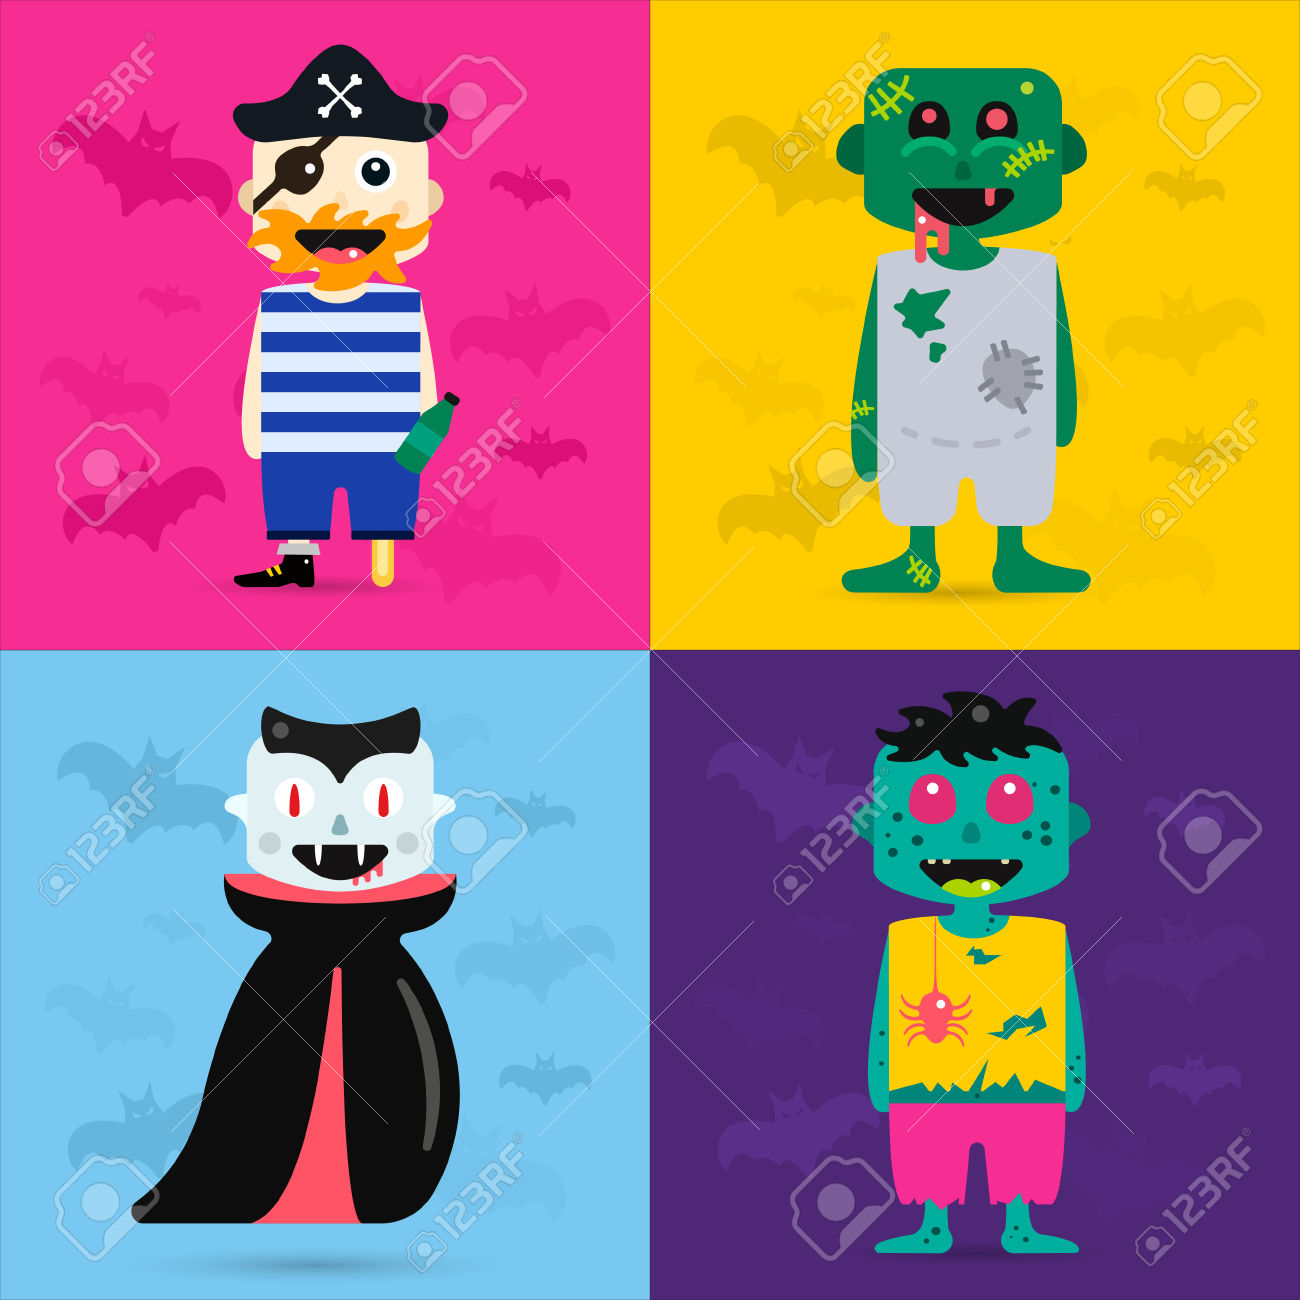 Kids character costumes clipart svg Kids character costumes clipart - ClipartFest svg